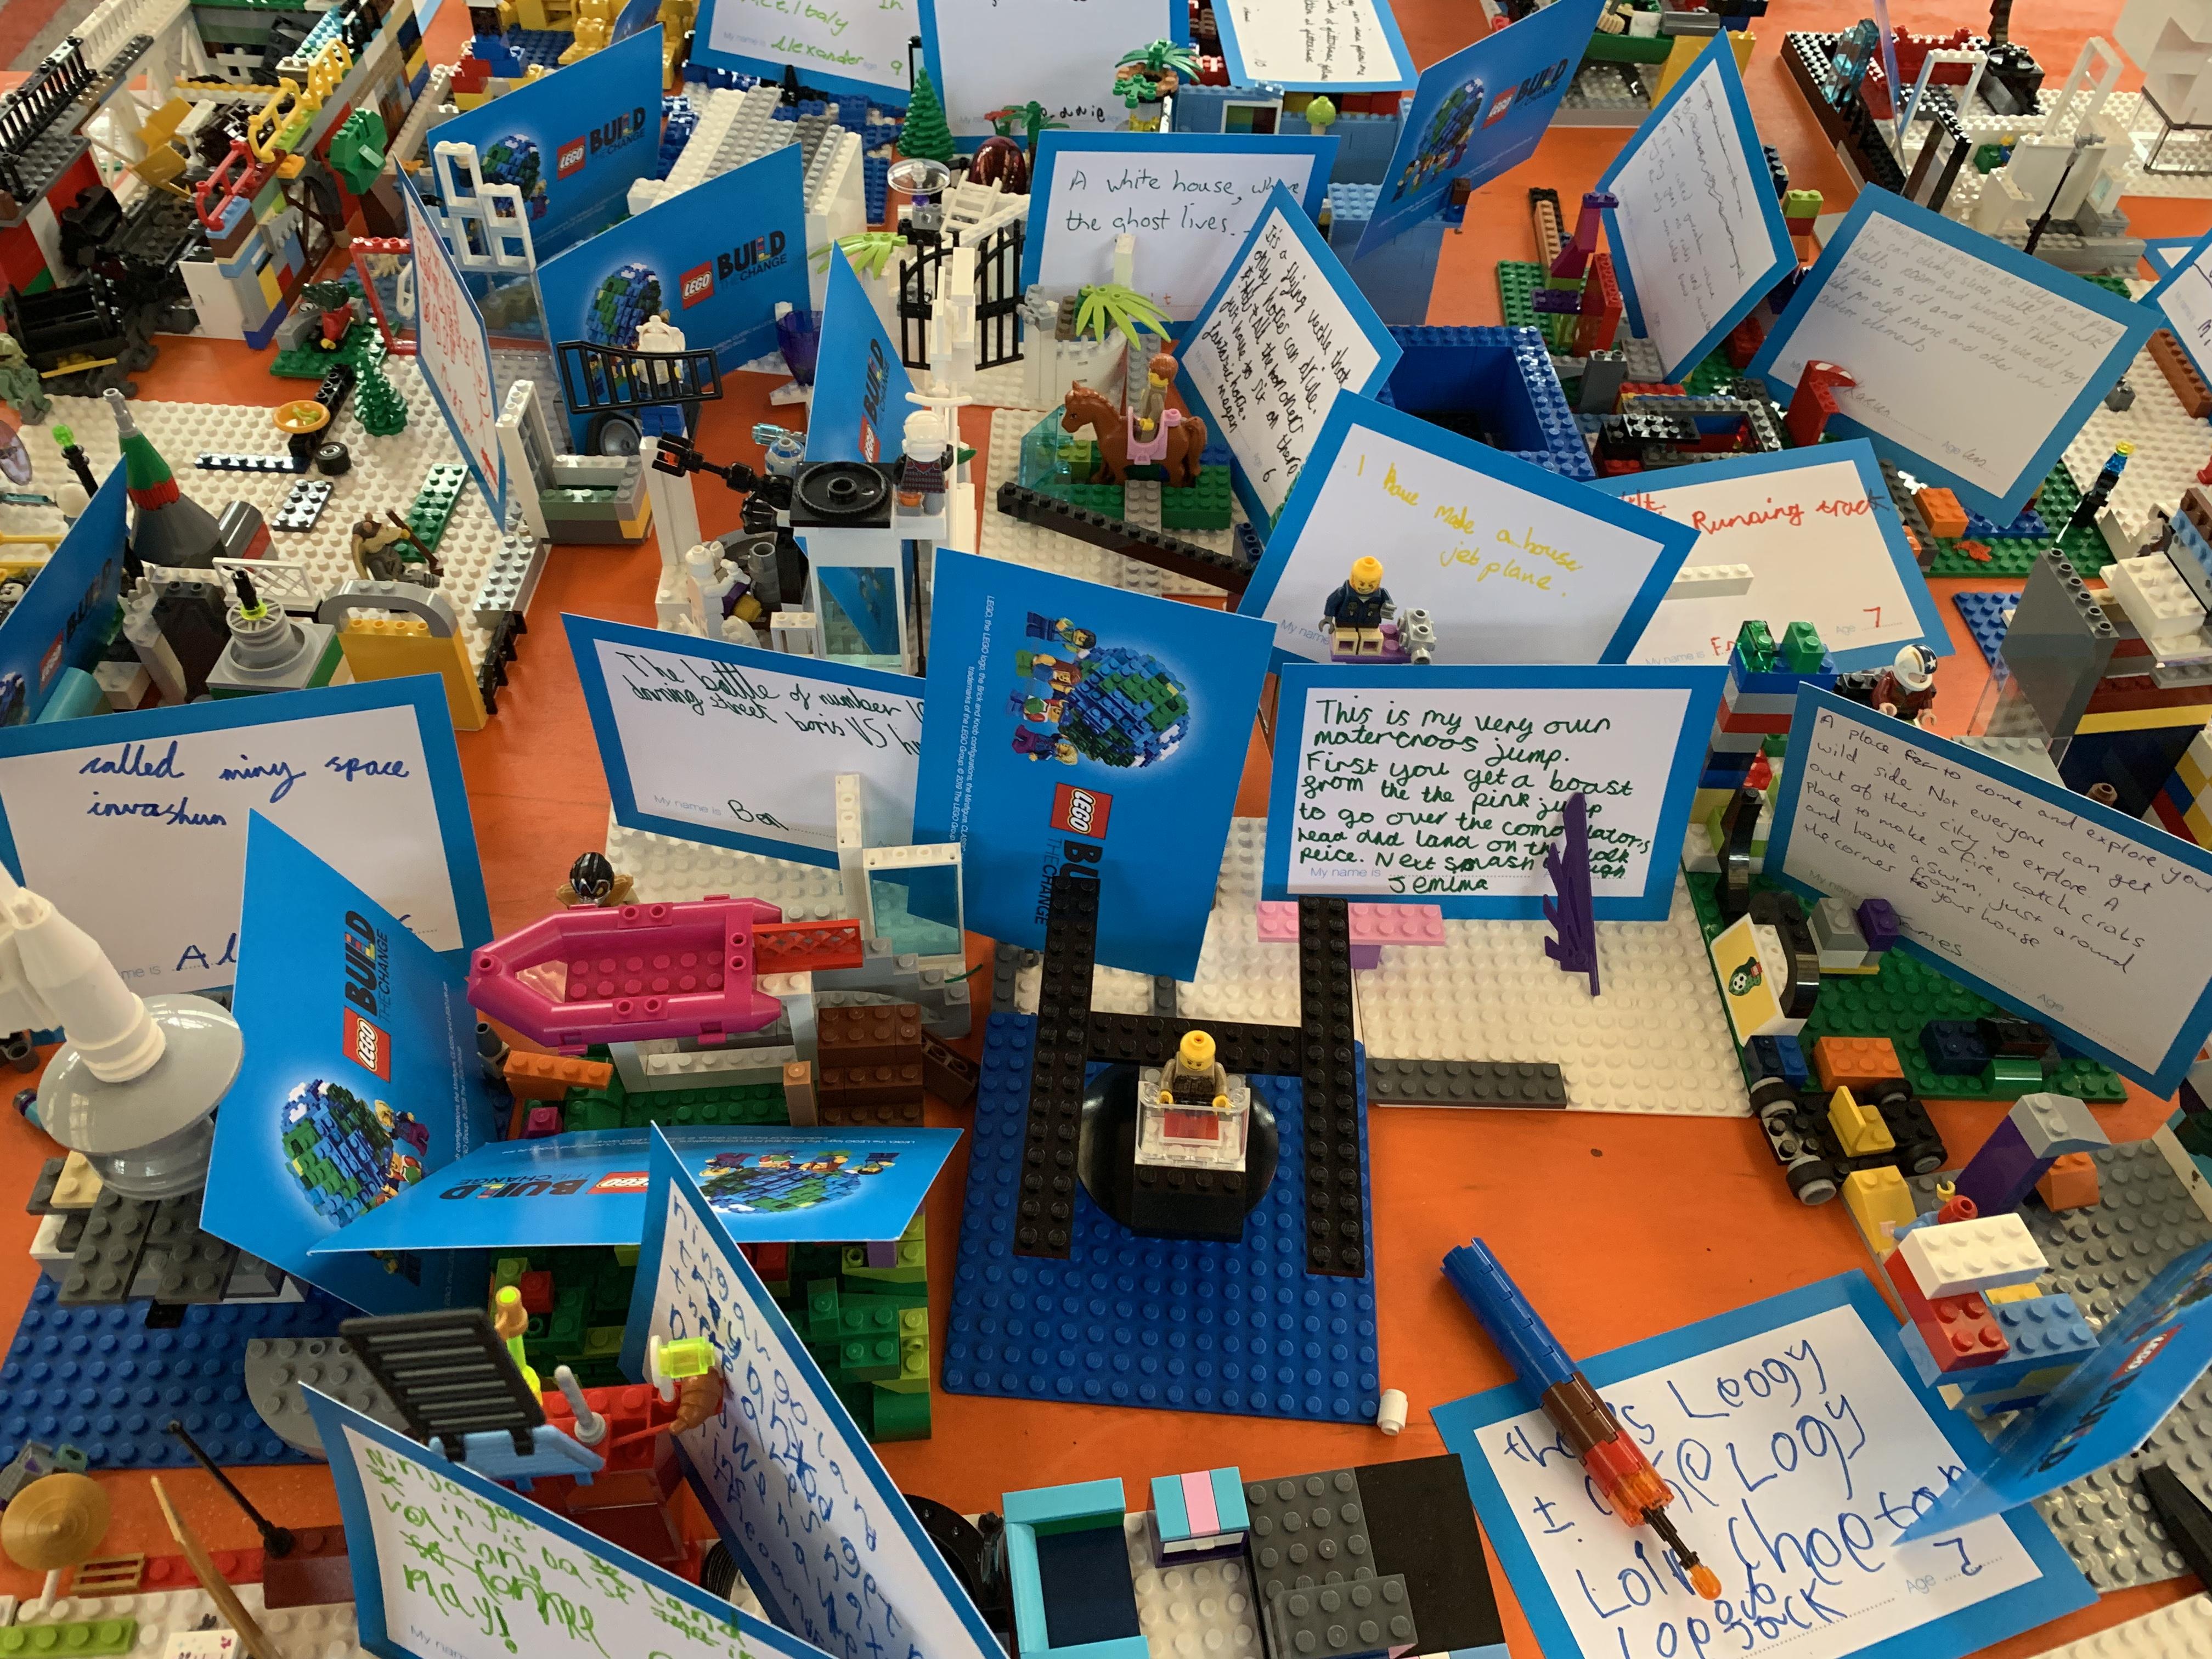 LEGO creations from Build the Change